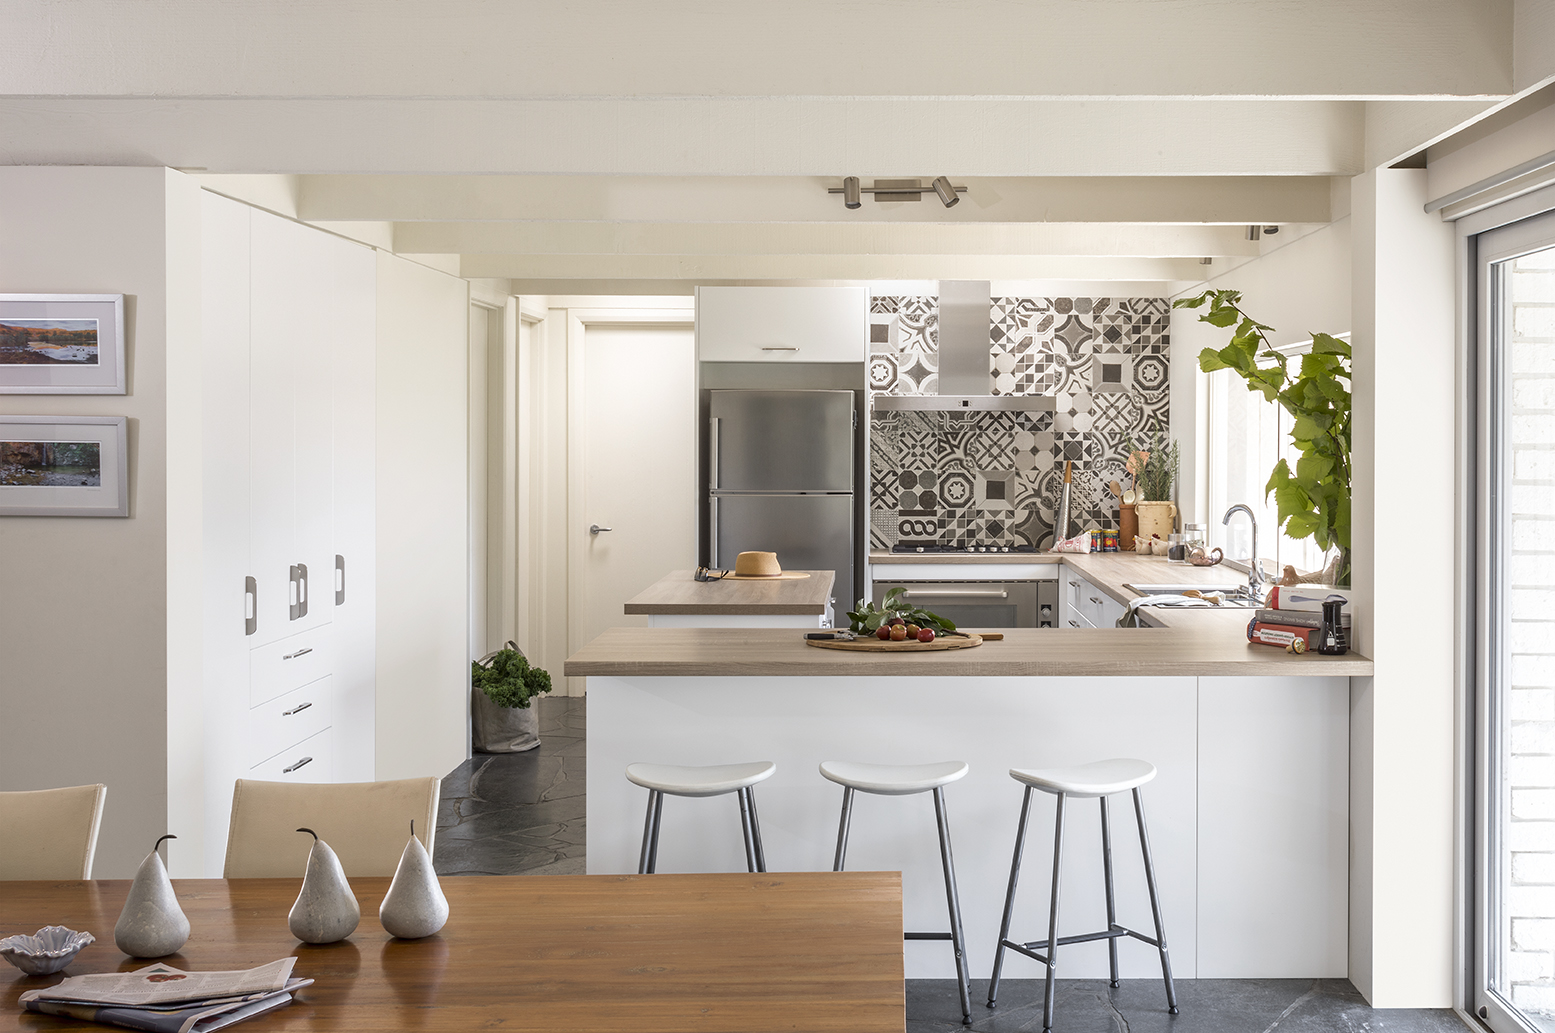 What's The Right Kitchen Layout For Me?